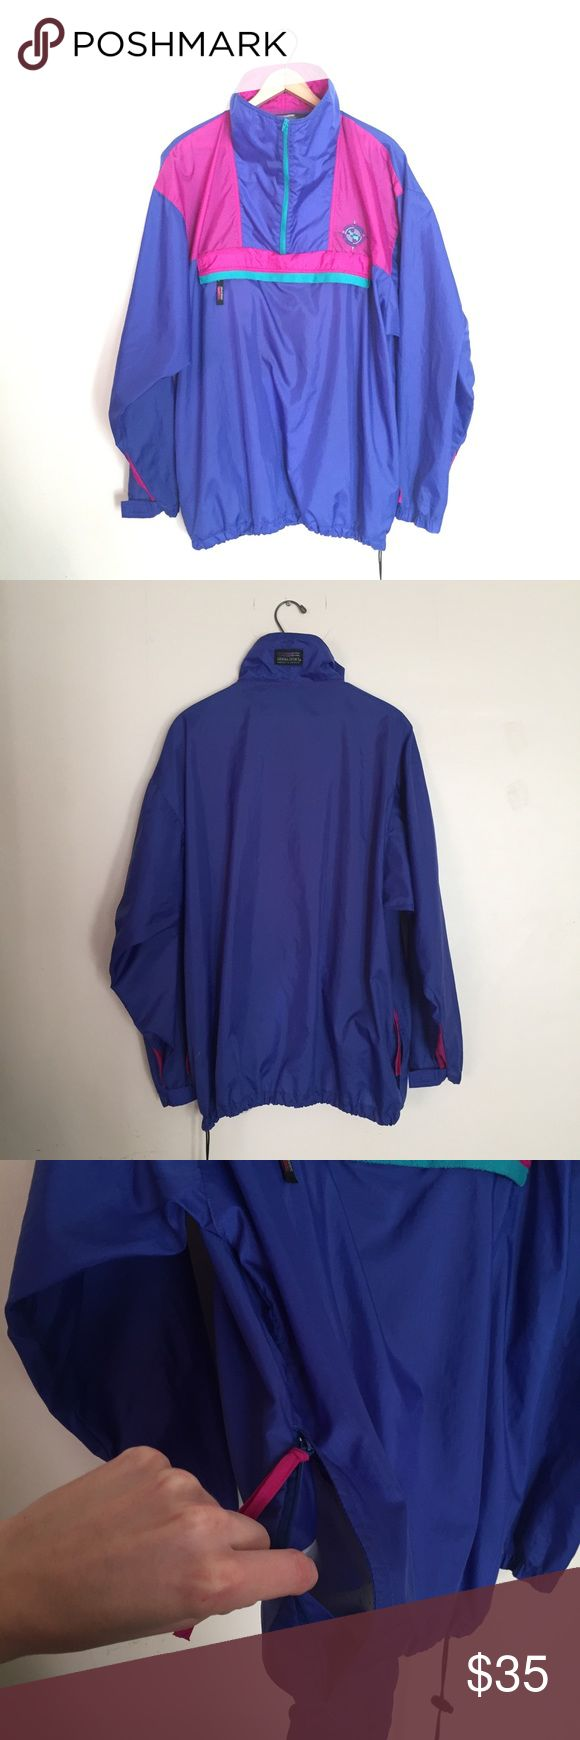 Vintage 90s Retro Windbreaker Awesome coat! Pullover. Huge kangaroo zipper pocket, and huge side pockets. Perfect for camping, hiking, and festivals. Lightweight easily packable. Unisex. Size large! Vintage Jackets & Coats